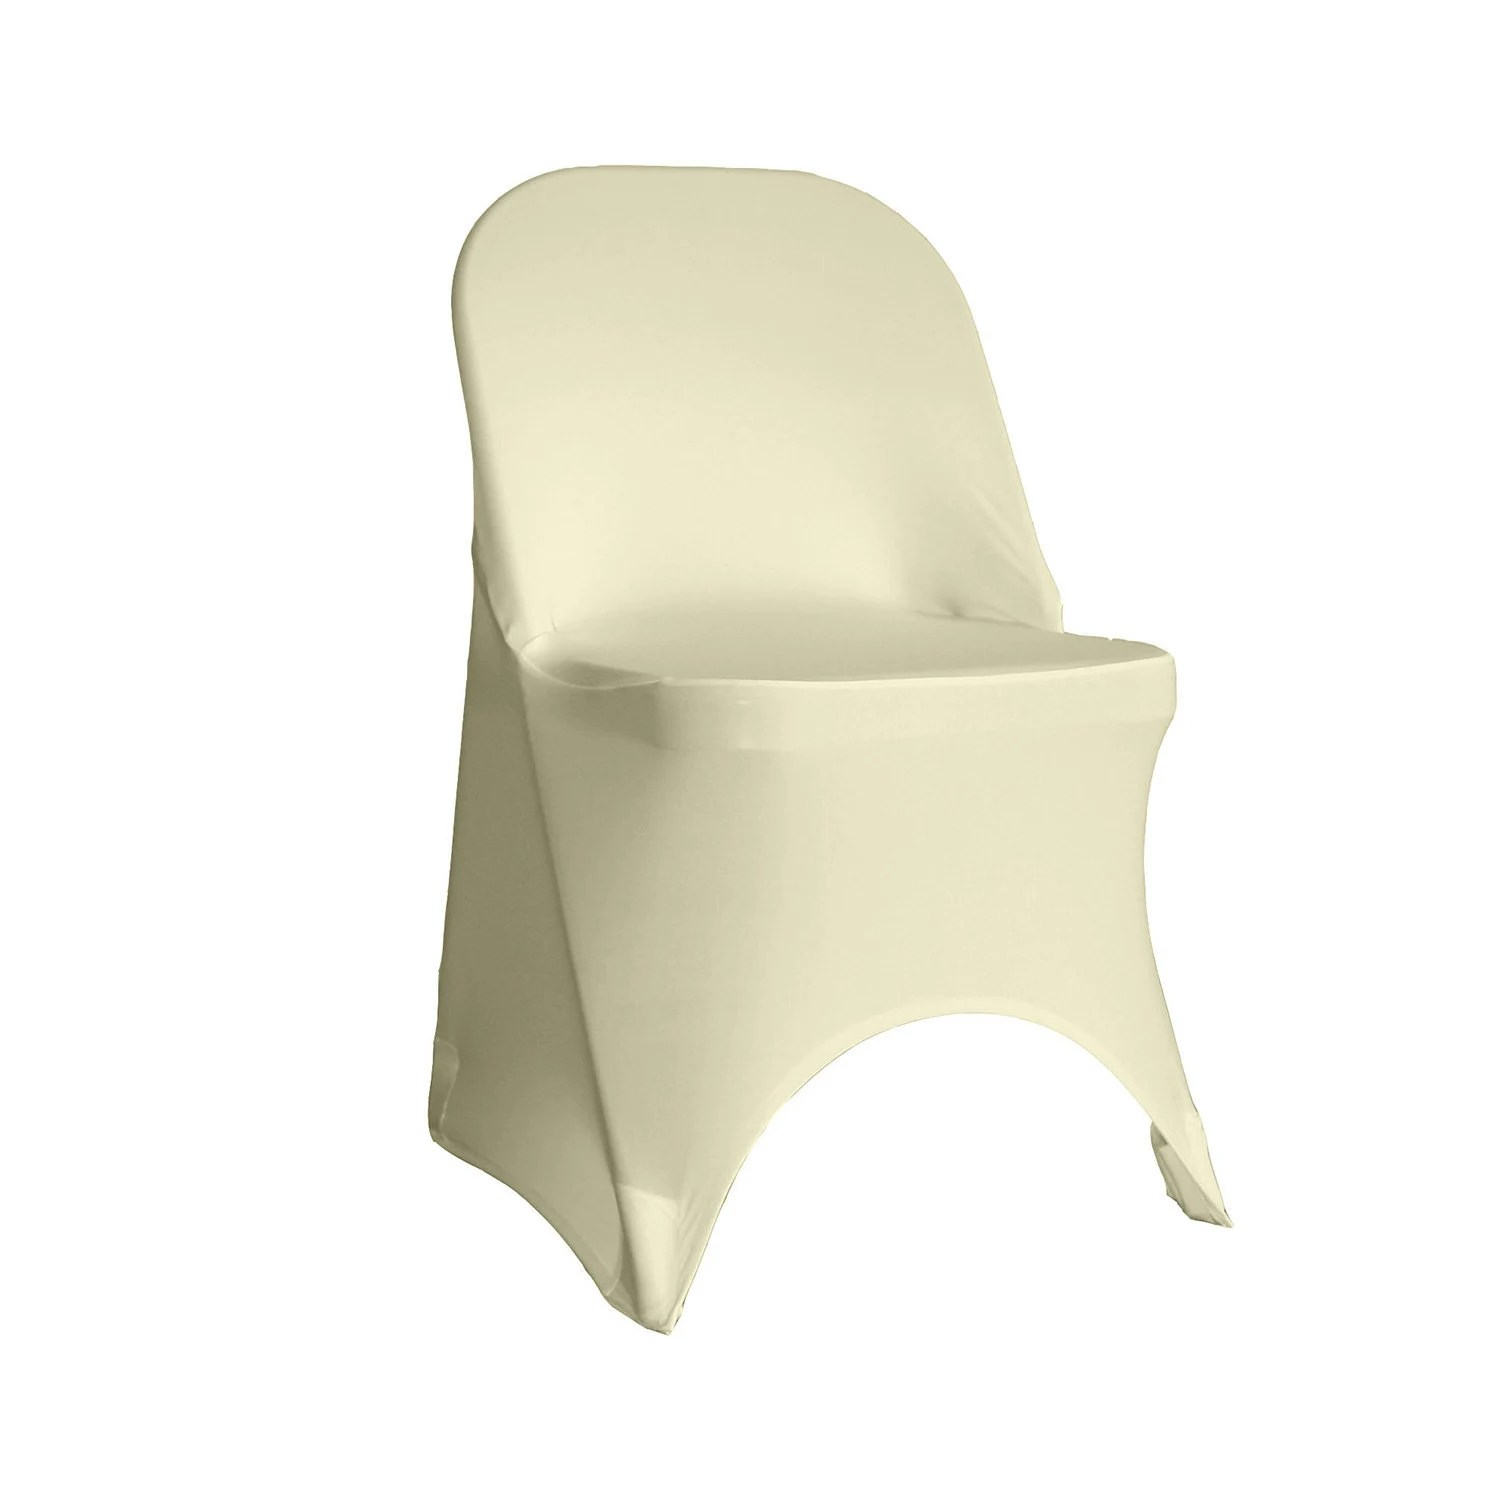 chair covers for purchase hunting stools and chairs ivory spandex folding cover stretch etsy 50